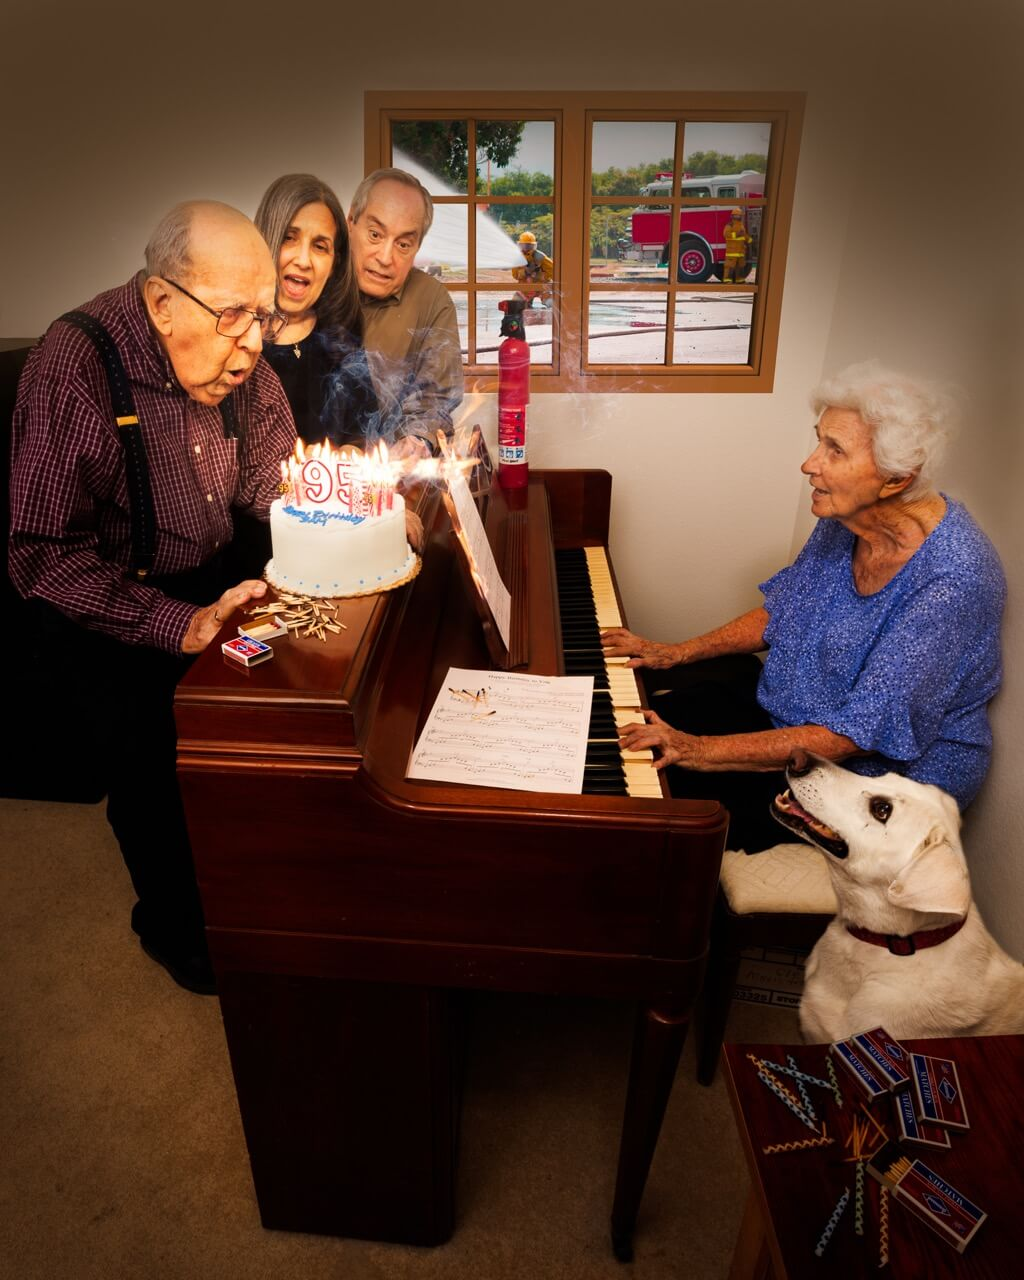 Stephen W. Cook - Oh Oh 95th Birthday Goes Awry